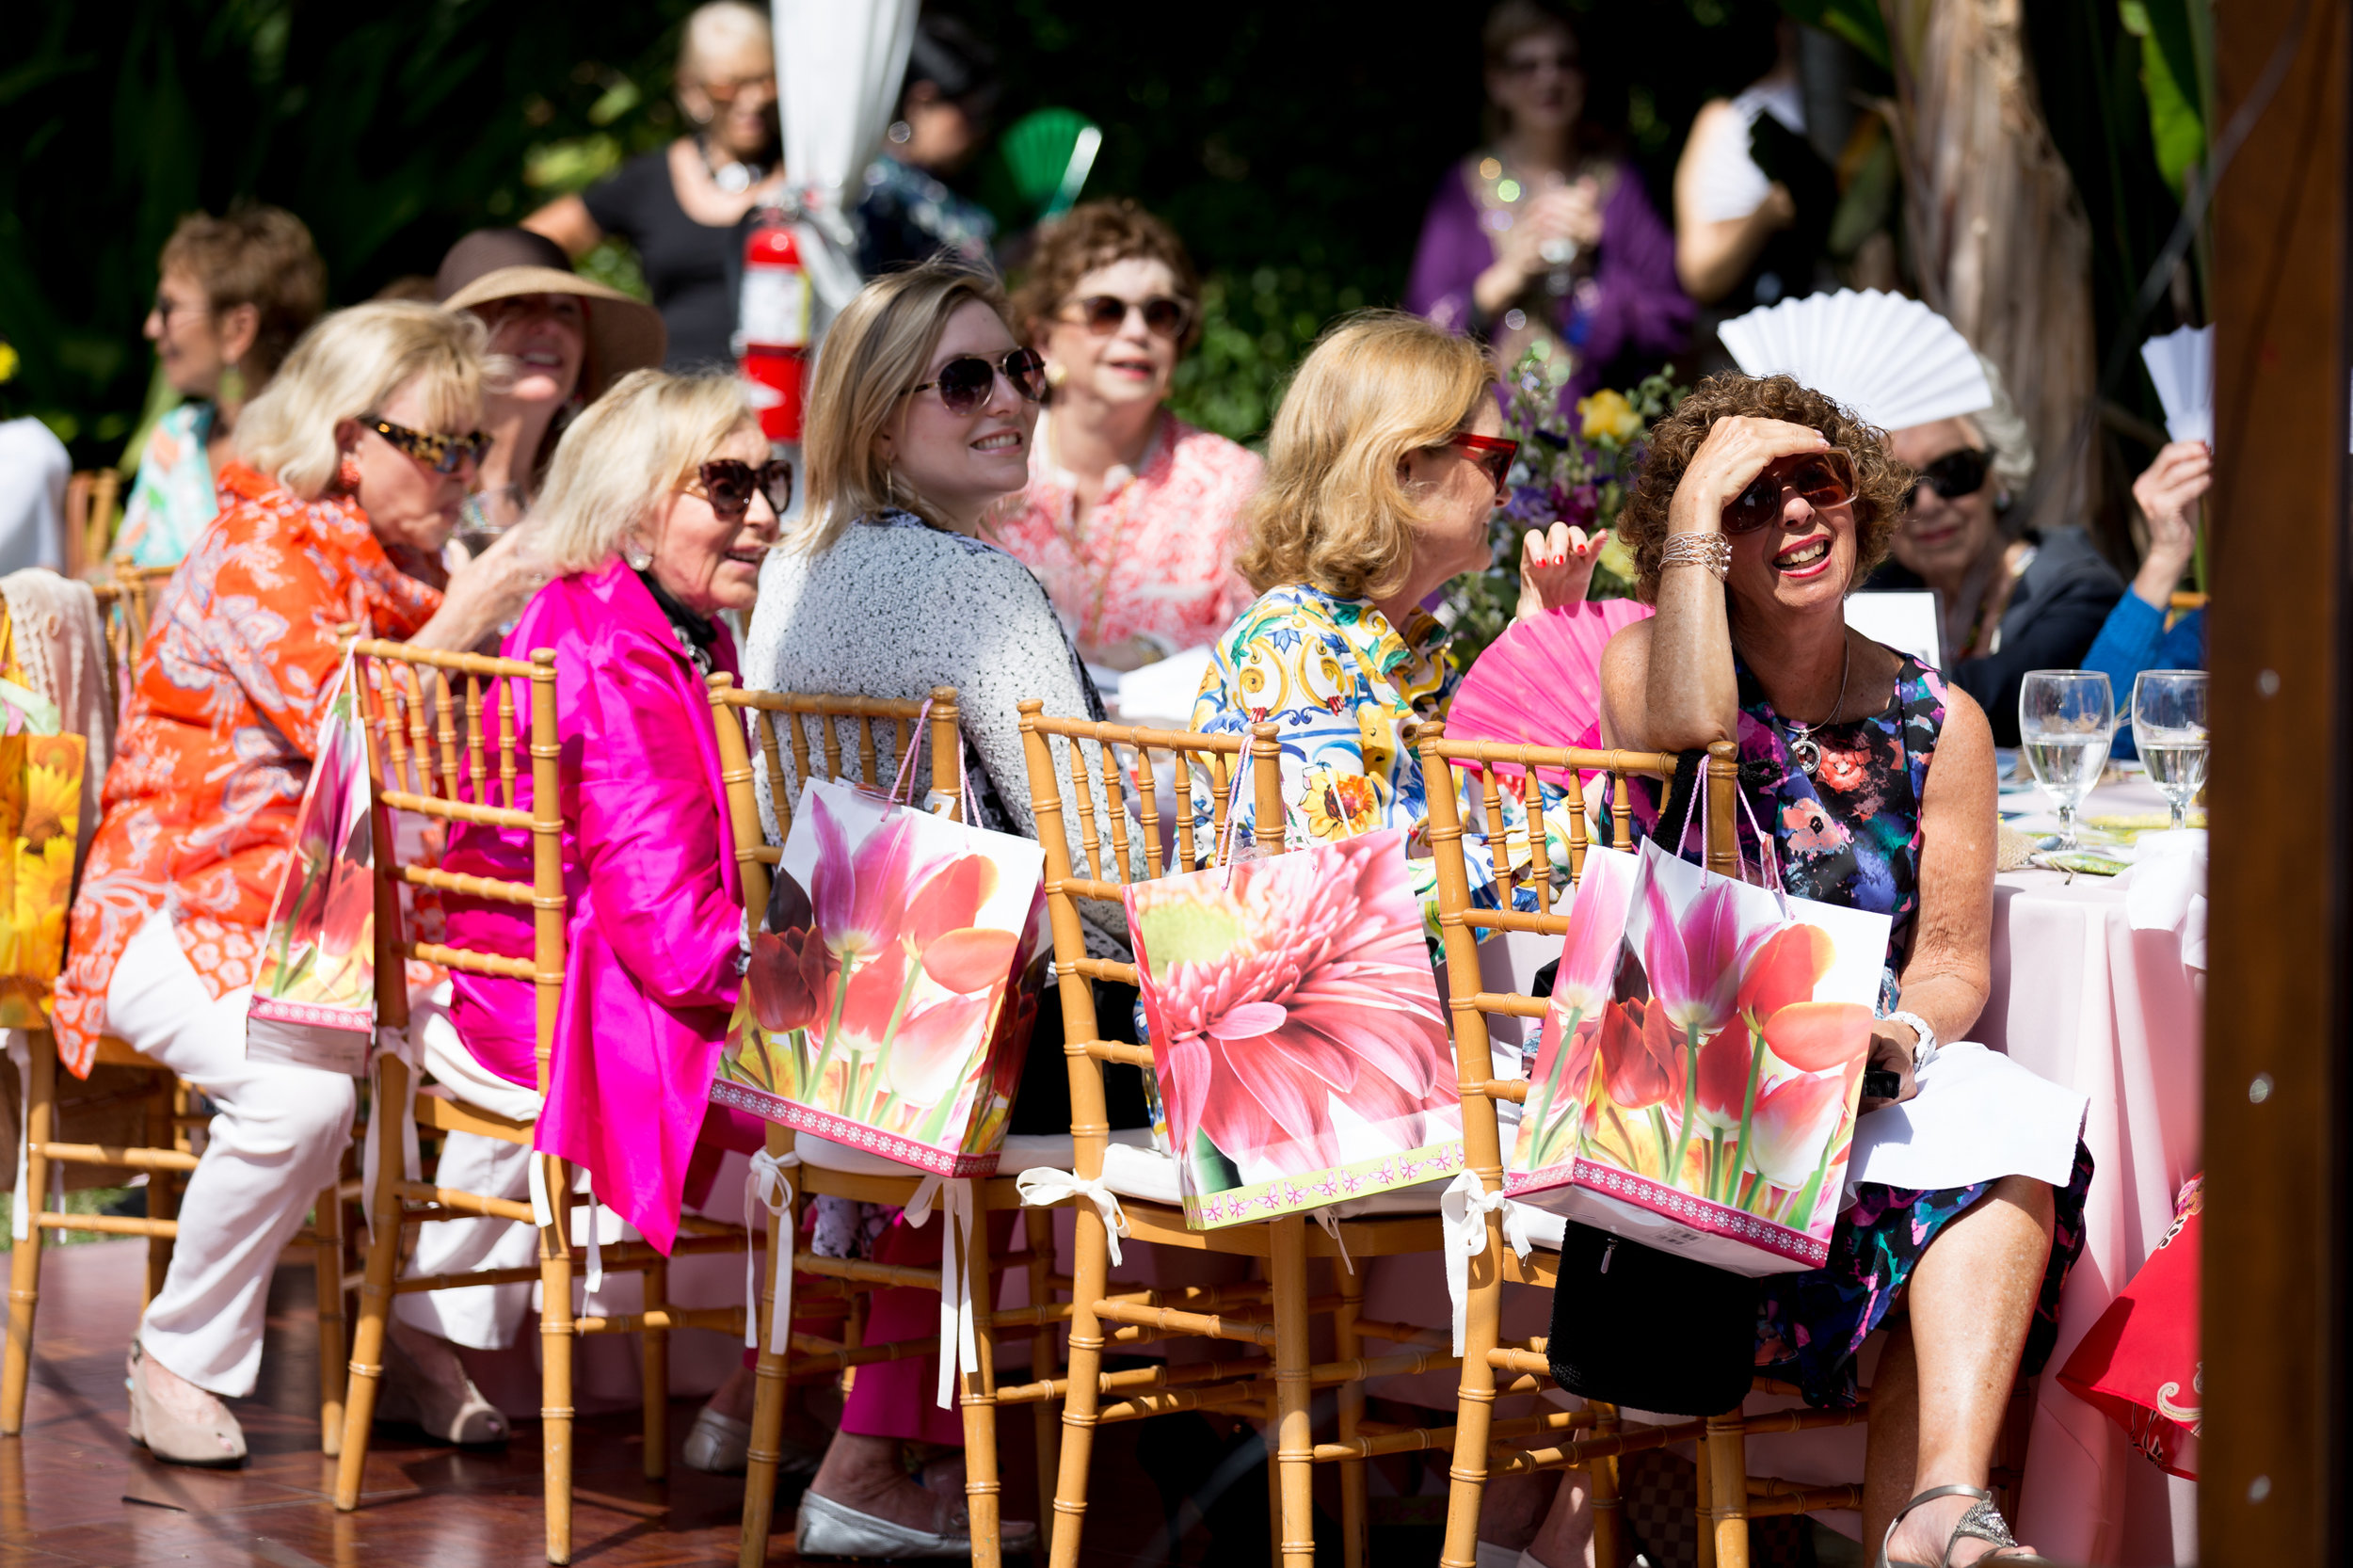 Women's Chodesh Group - Rosh Chodesh, the celebration of the beginning of the Jewish month, is an especially meaningful day for Jewish women and has blossomed into a celebration of women and femininity. Women are cordially invited to join our Rosh Chodesh Group events to celebrate the new month, holidays and our lives as Jewish women.